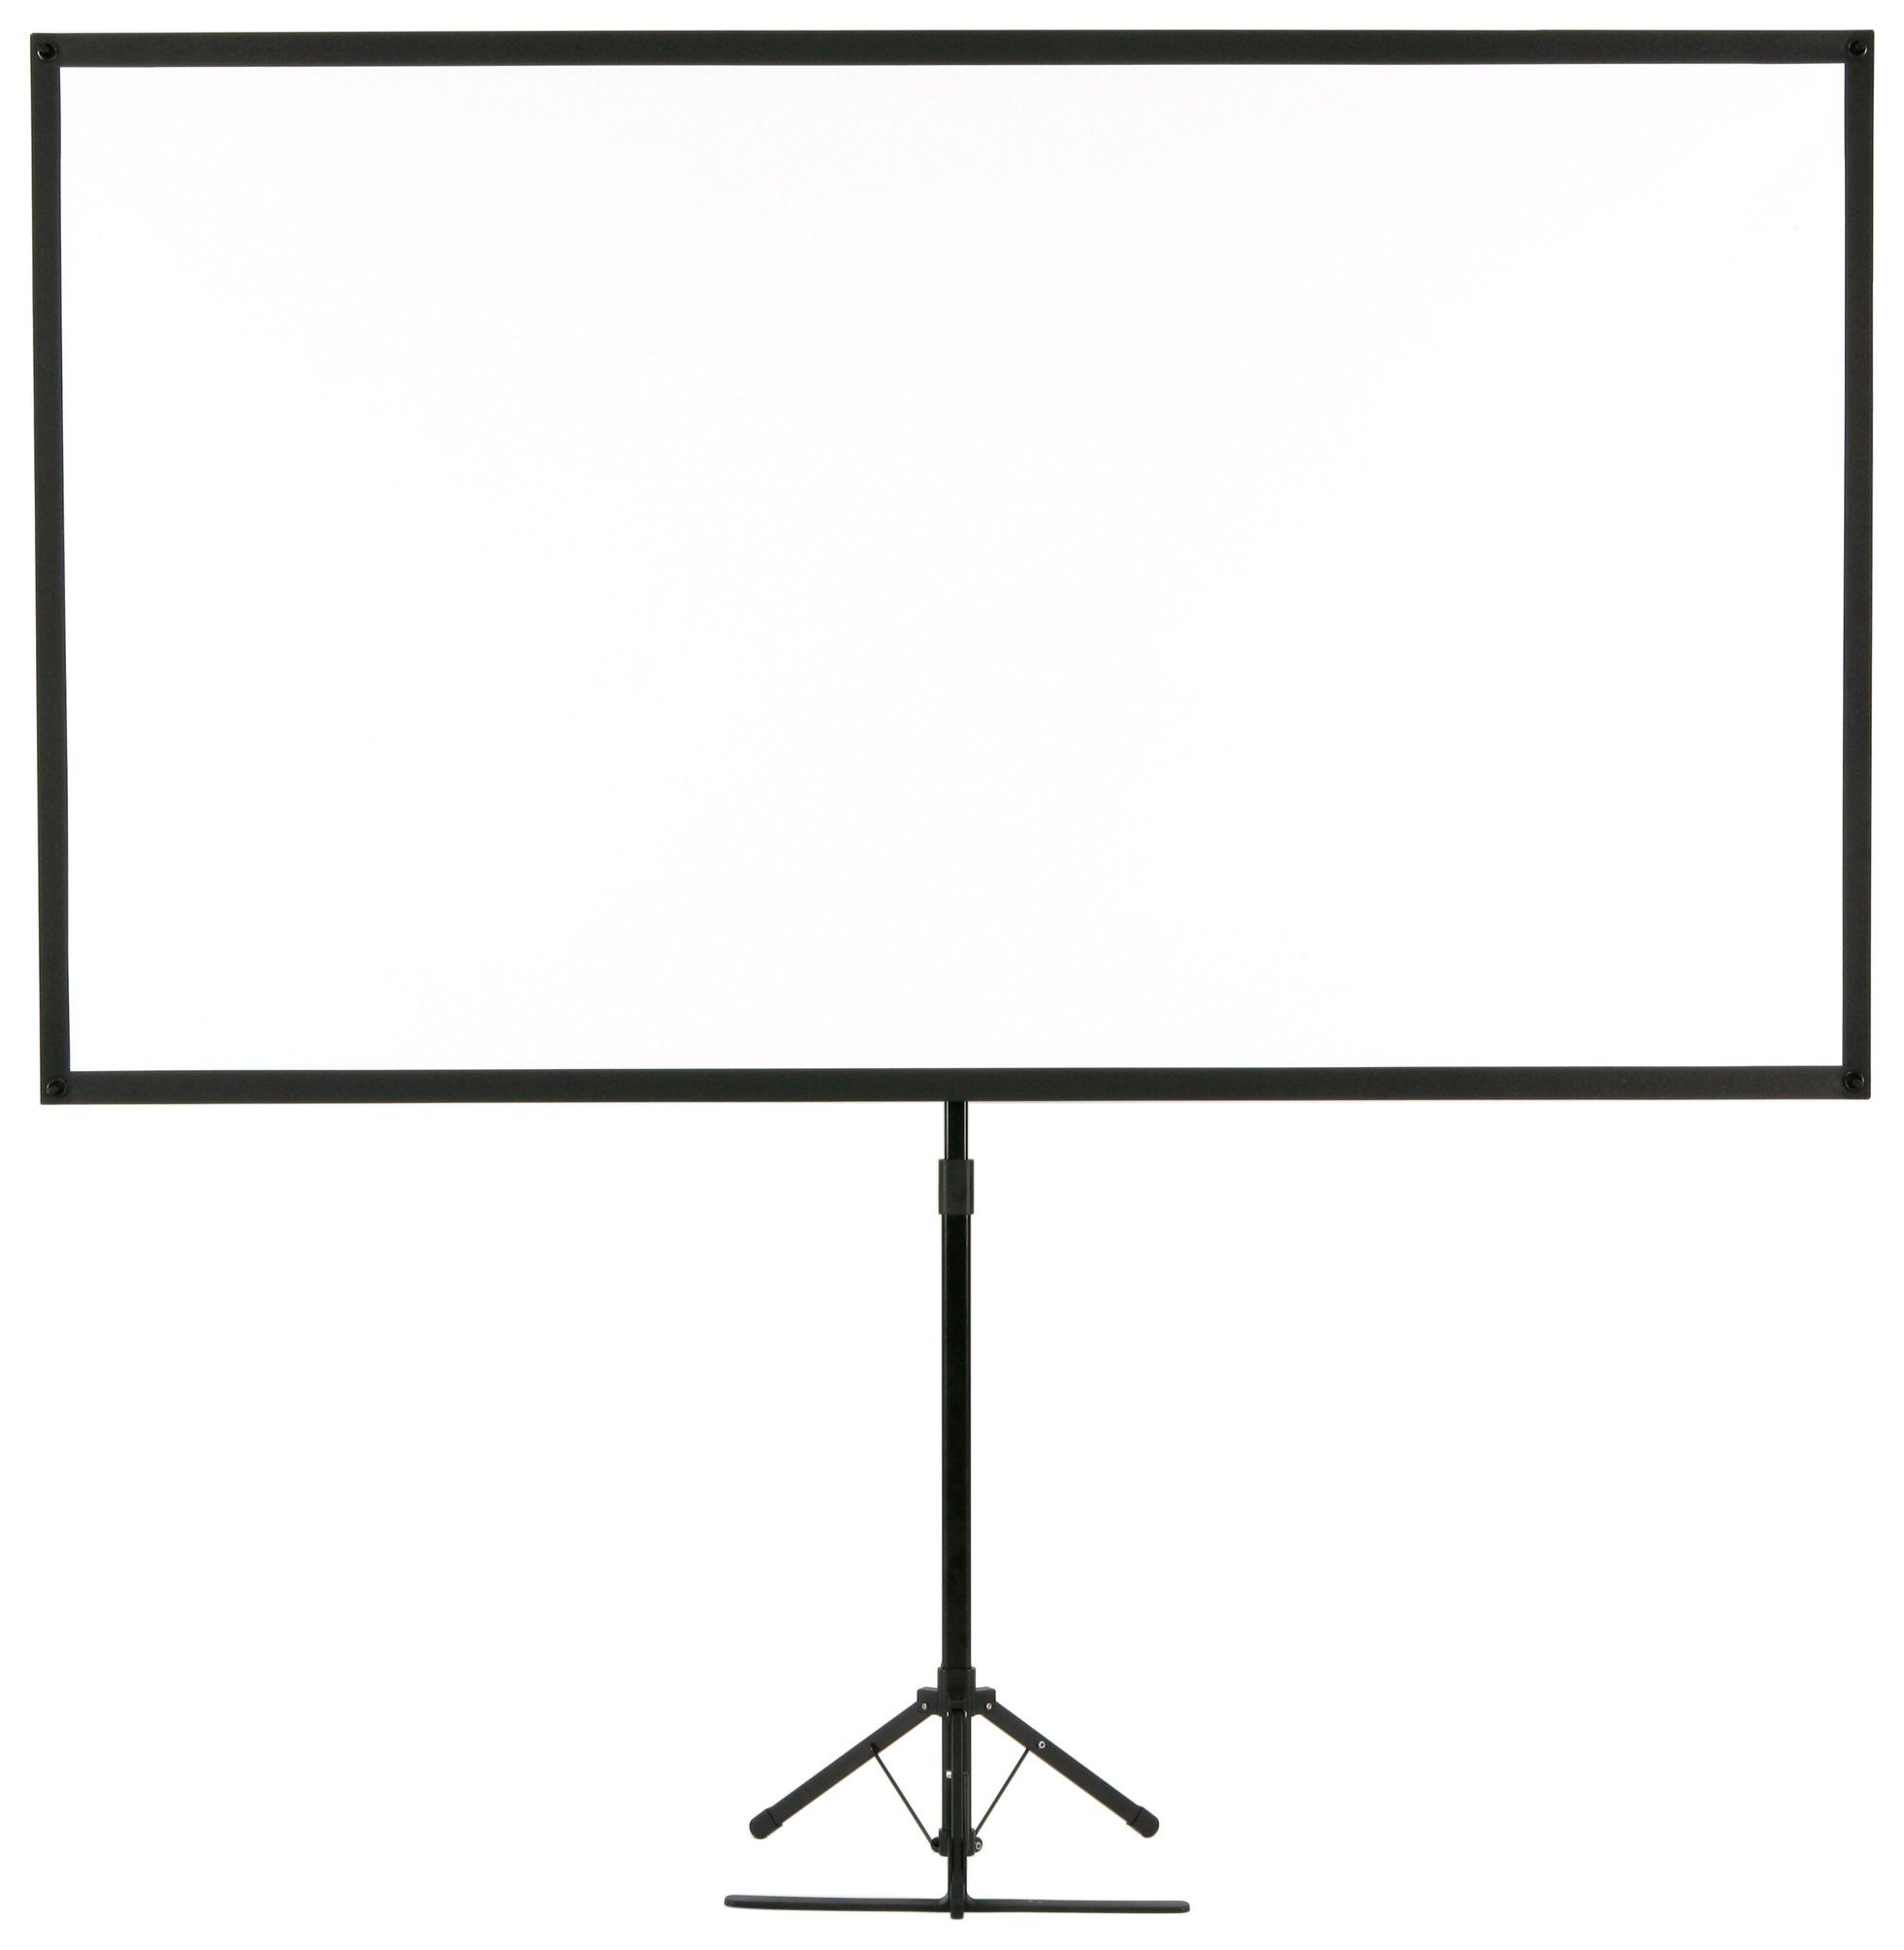 epson 80inch portable projector screen elpsc21